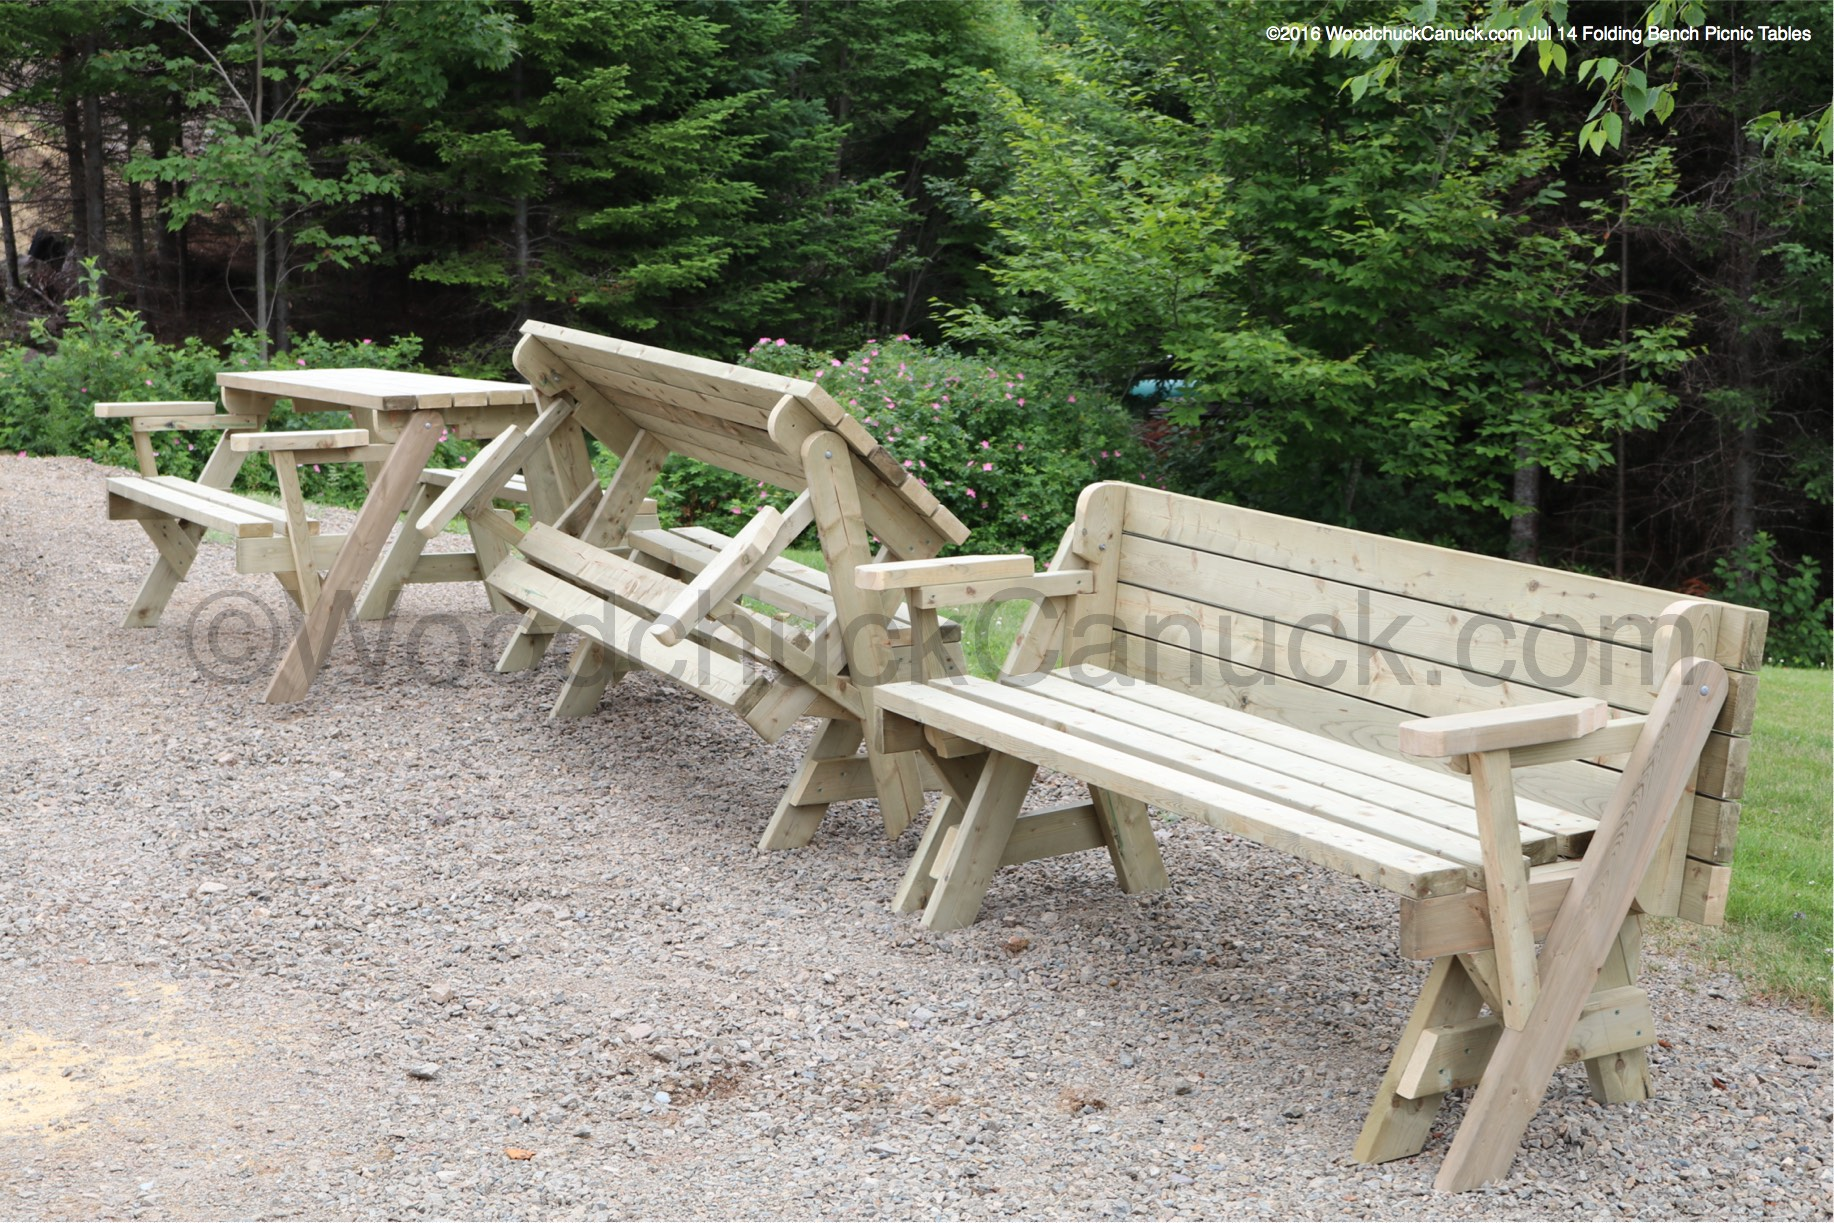 Folding Bench Picnic Table 6ft - WoodchuckCanuck.com